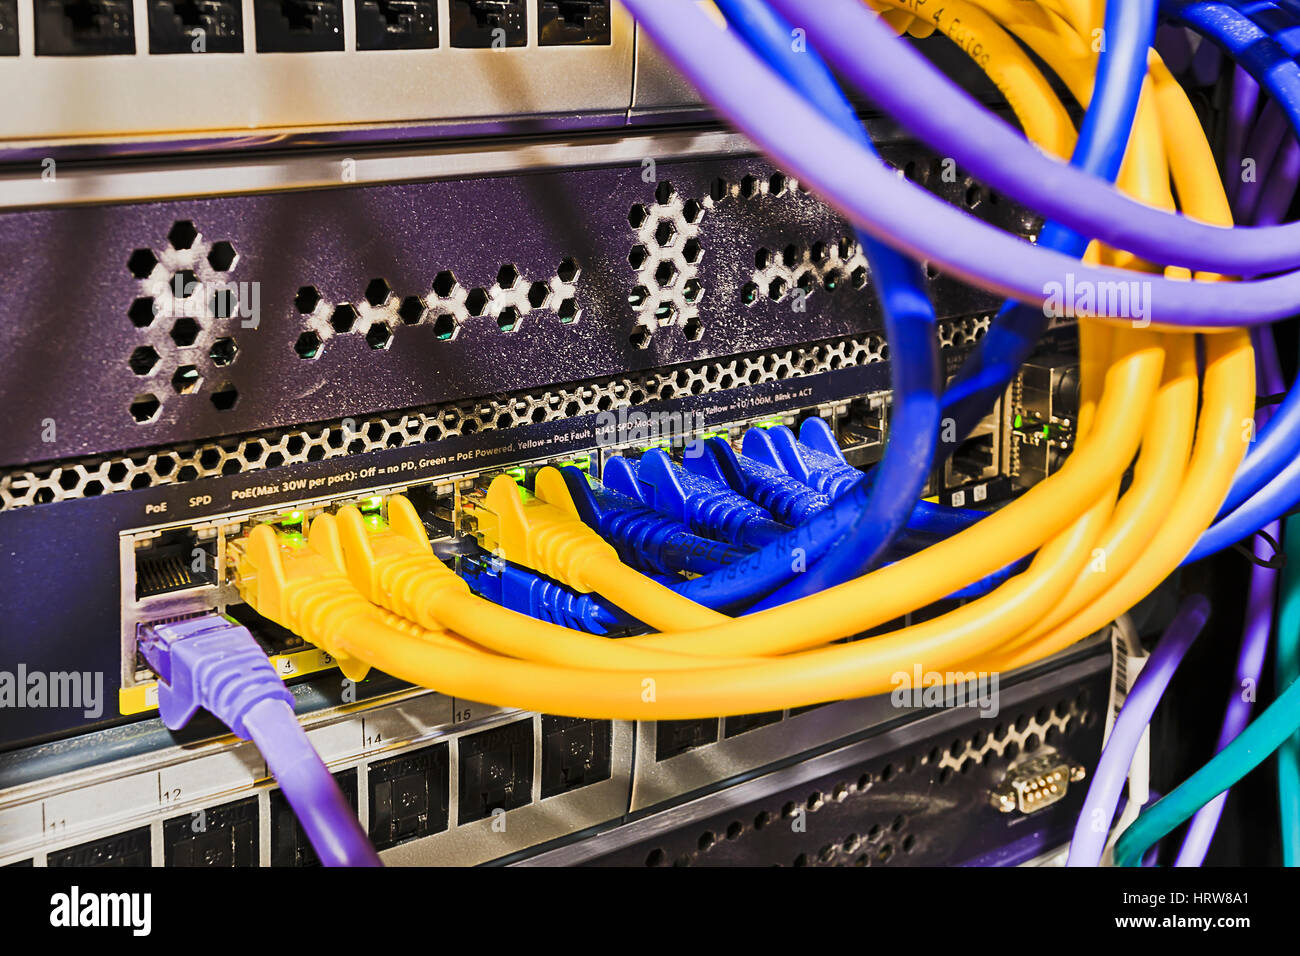 Patch Panel Stock Photos Images Alamy 19 Wiring Diagram Data Centre With Cords Connected To Power Over Ethernet Ports Of Switch Mounted